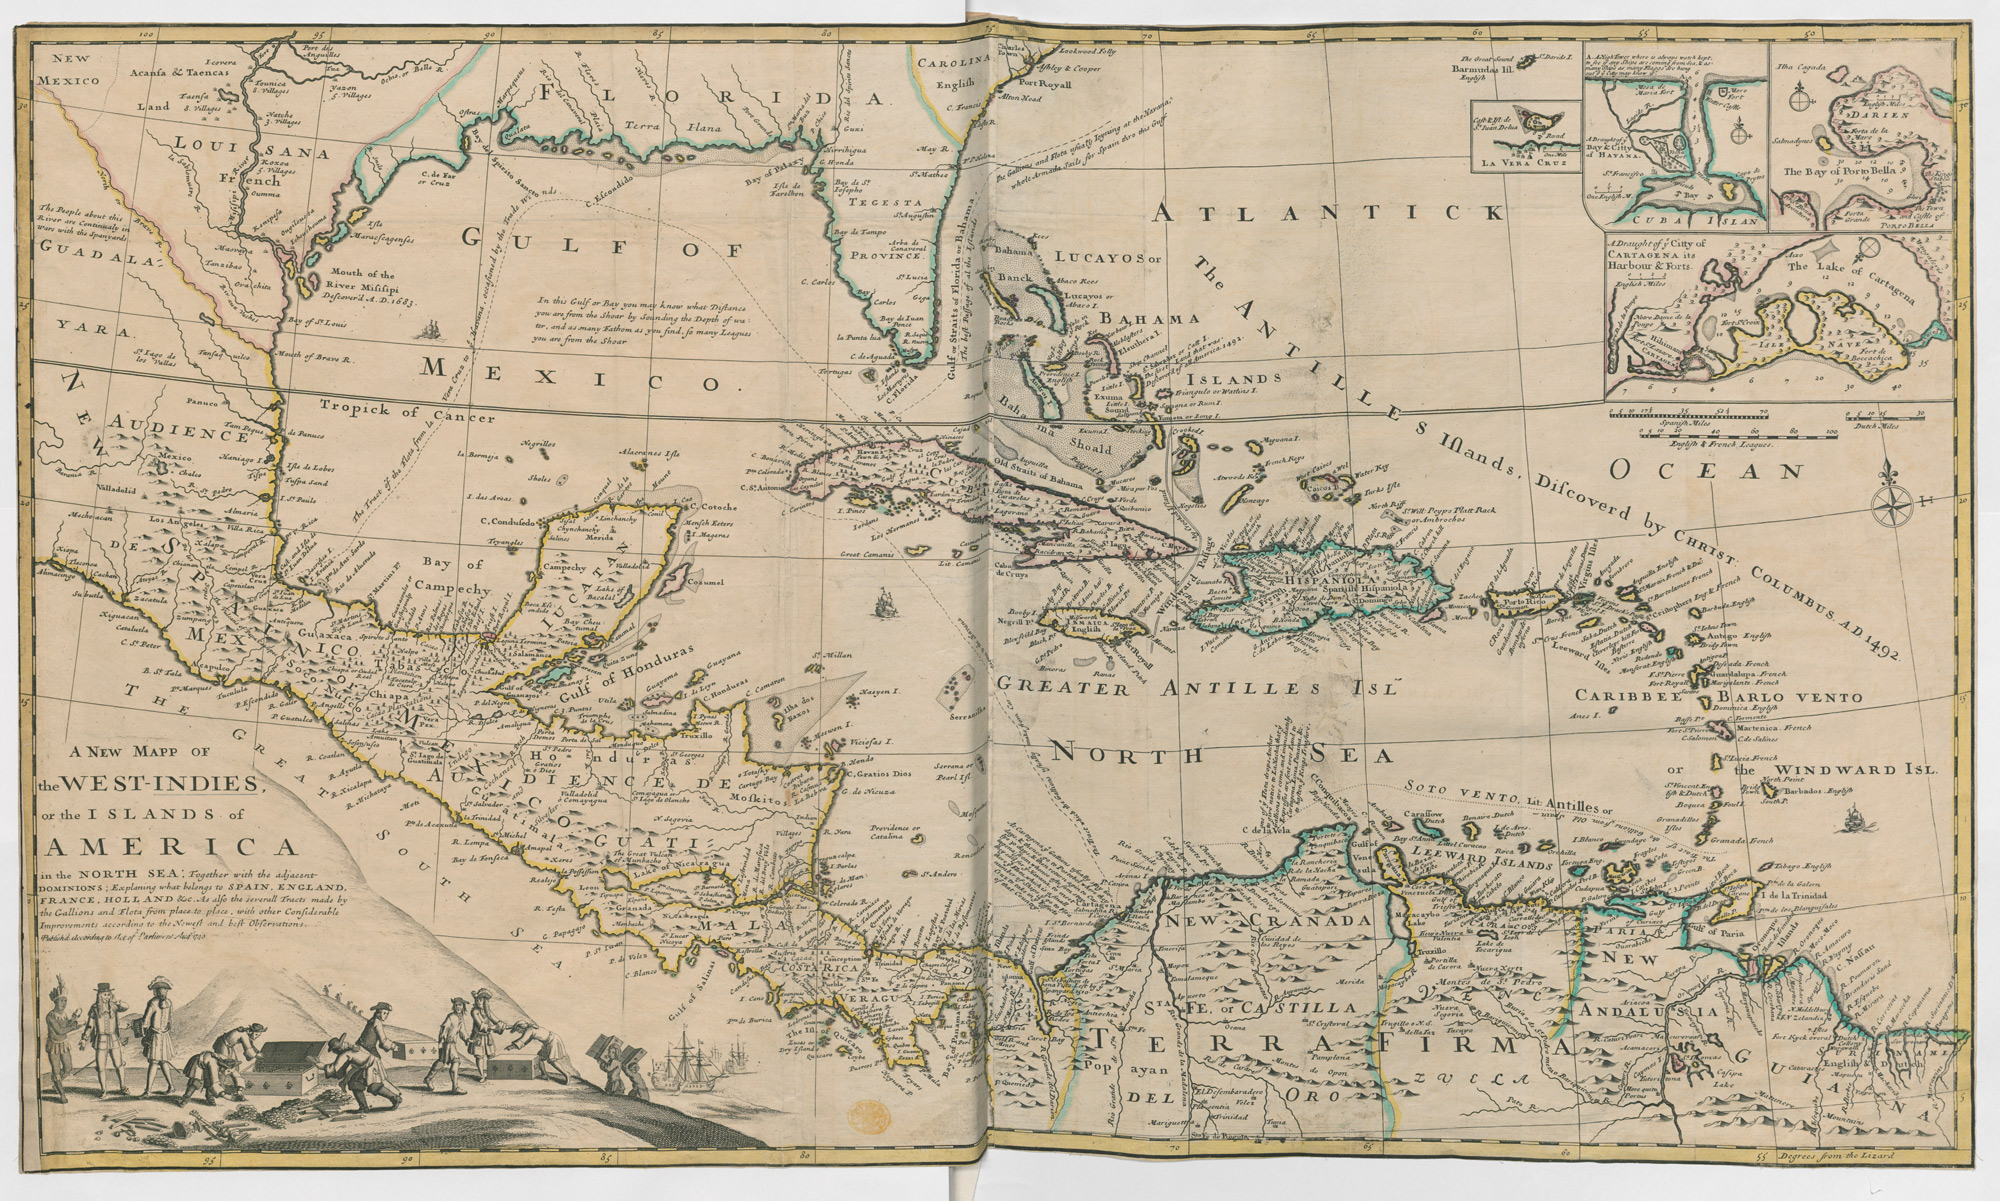 A map of the West Indies - The British Library